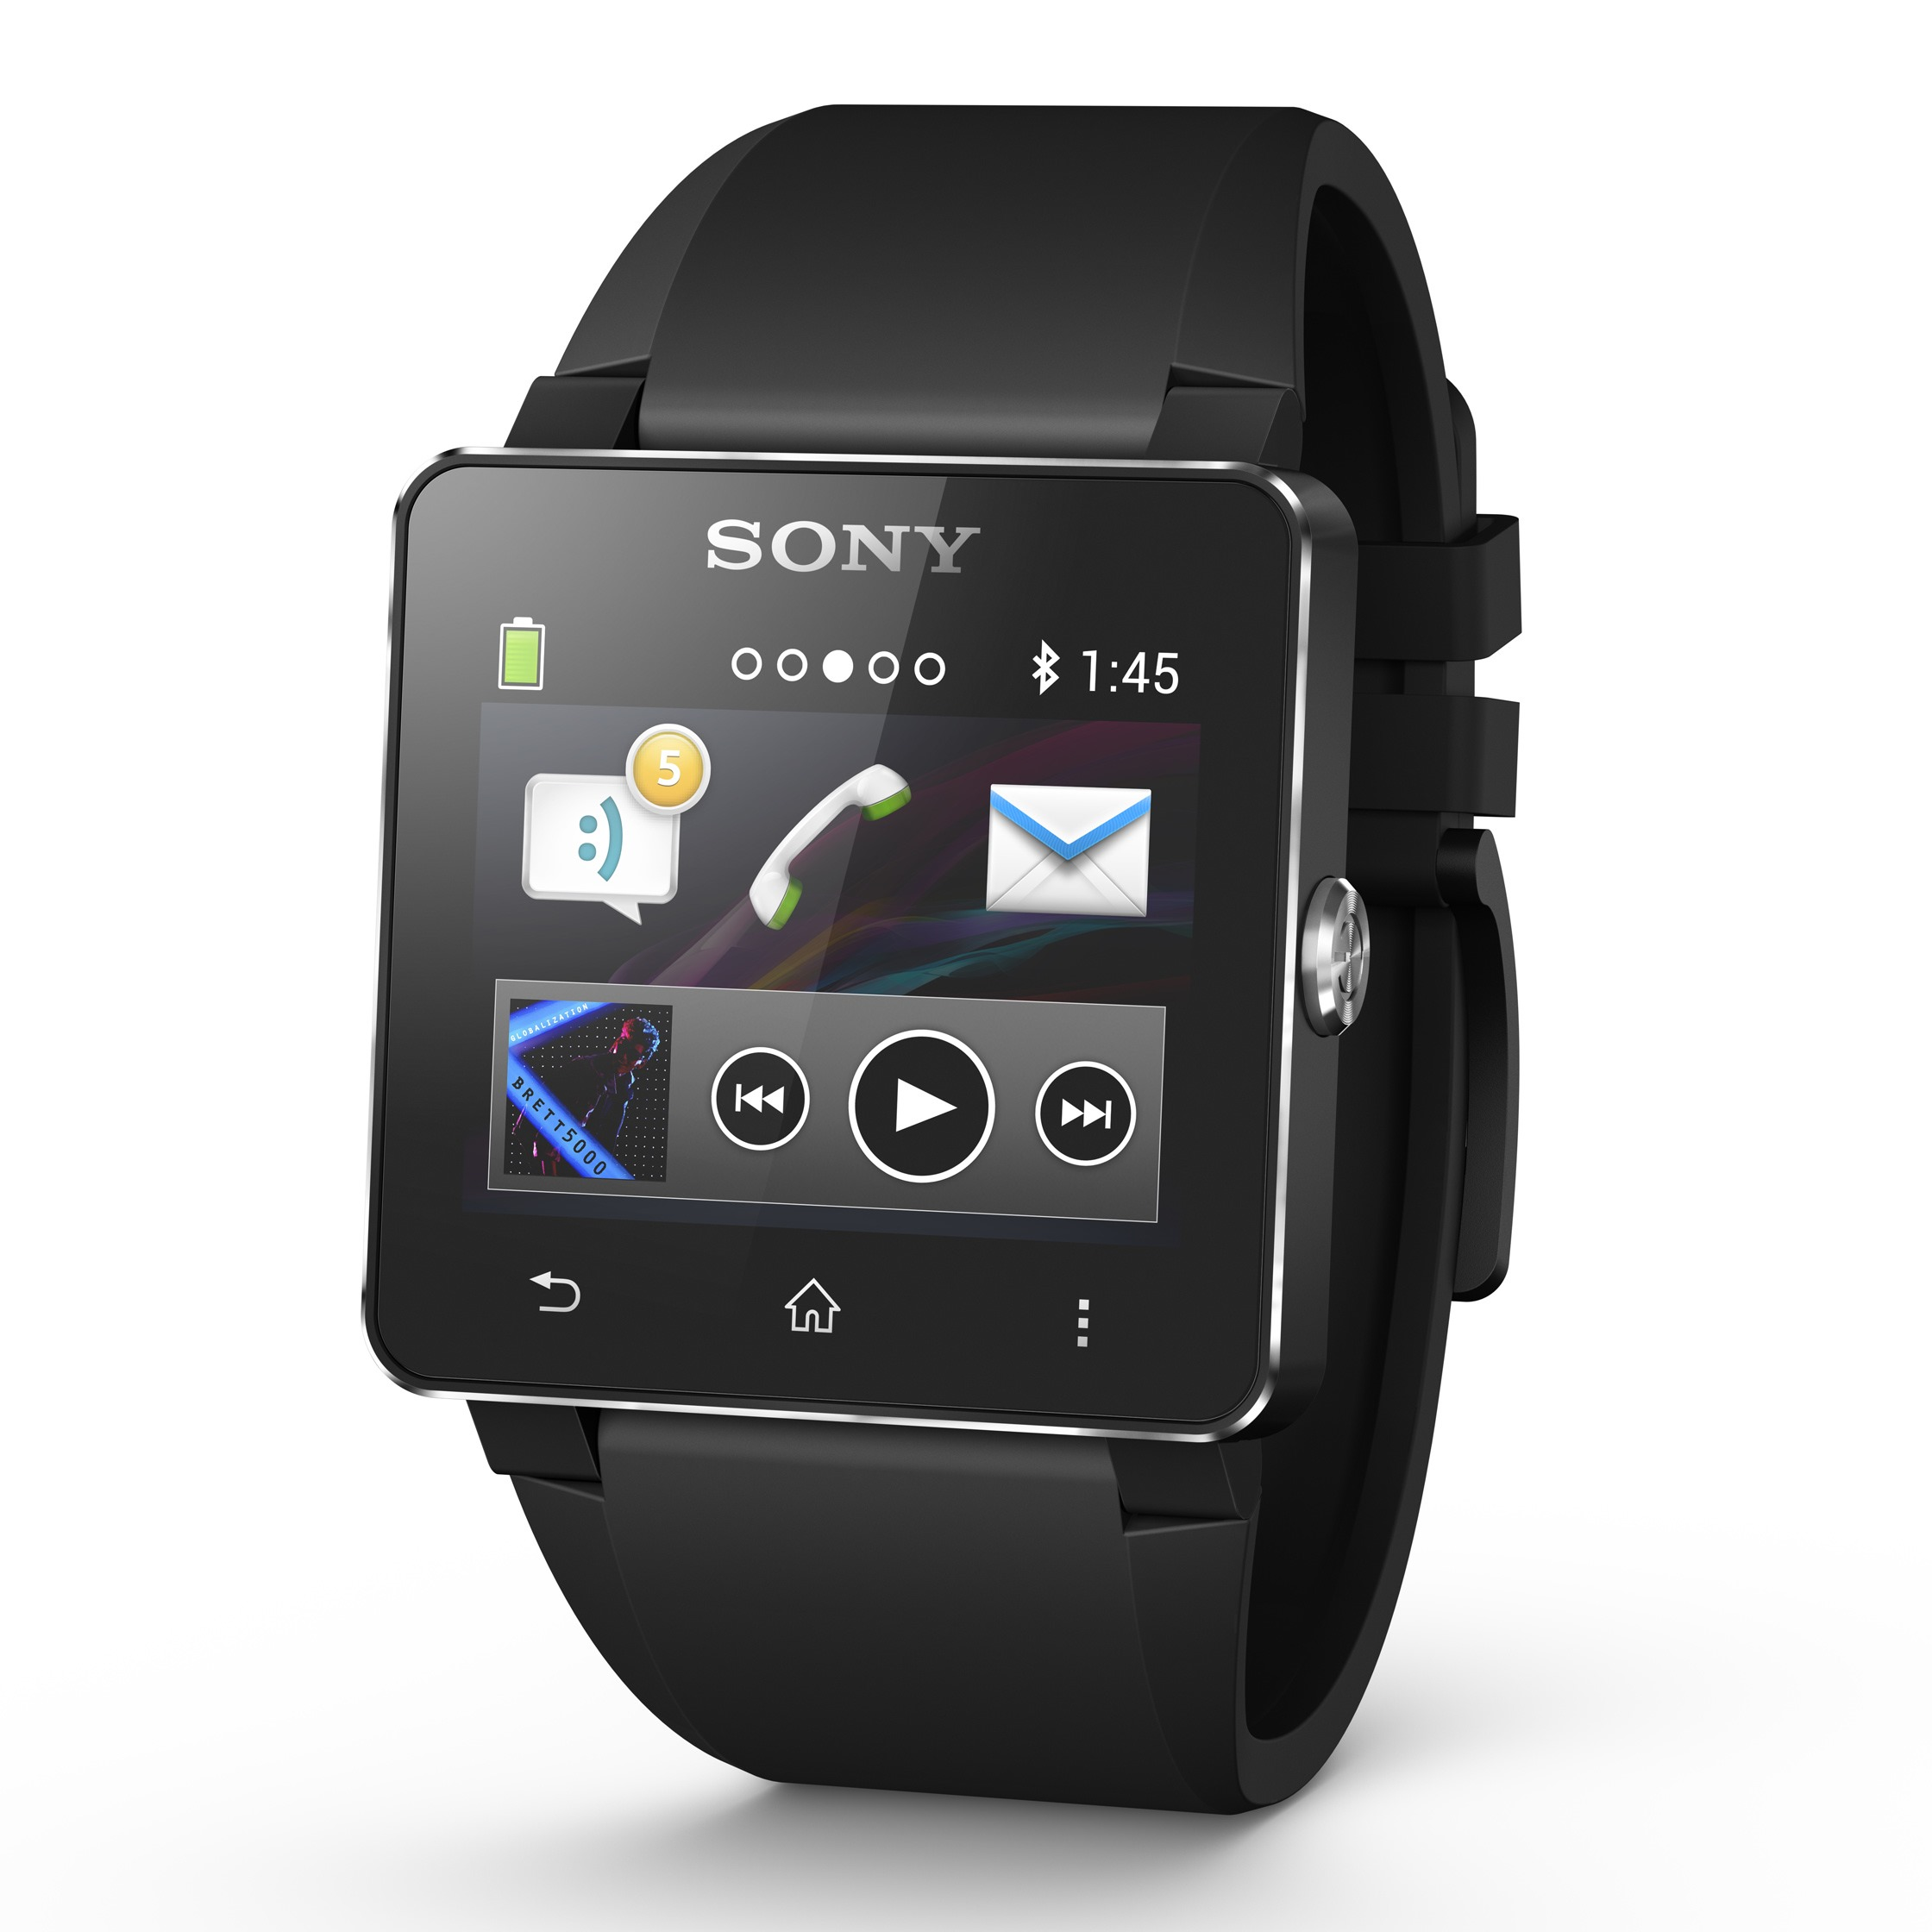 Sony Mobile Watch Price